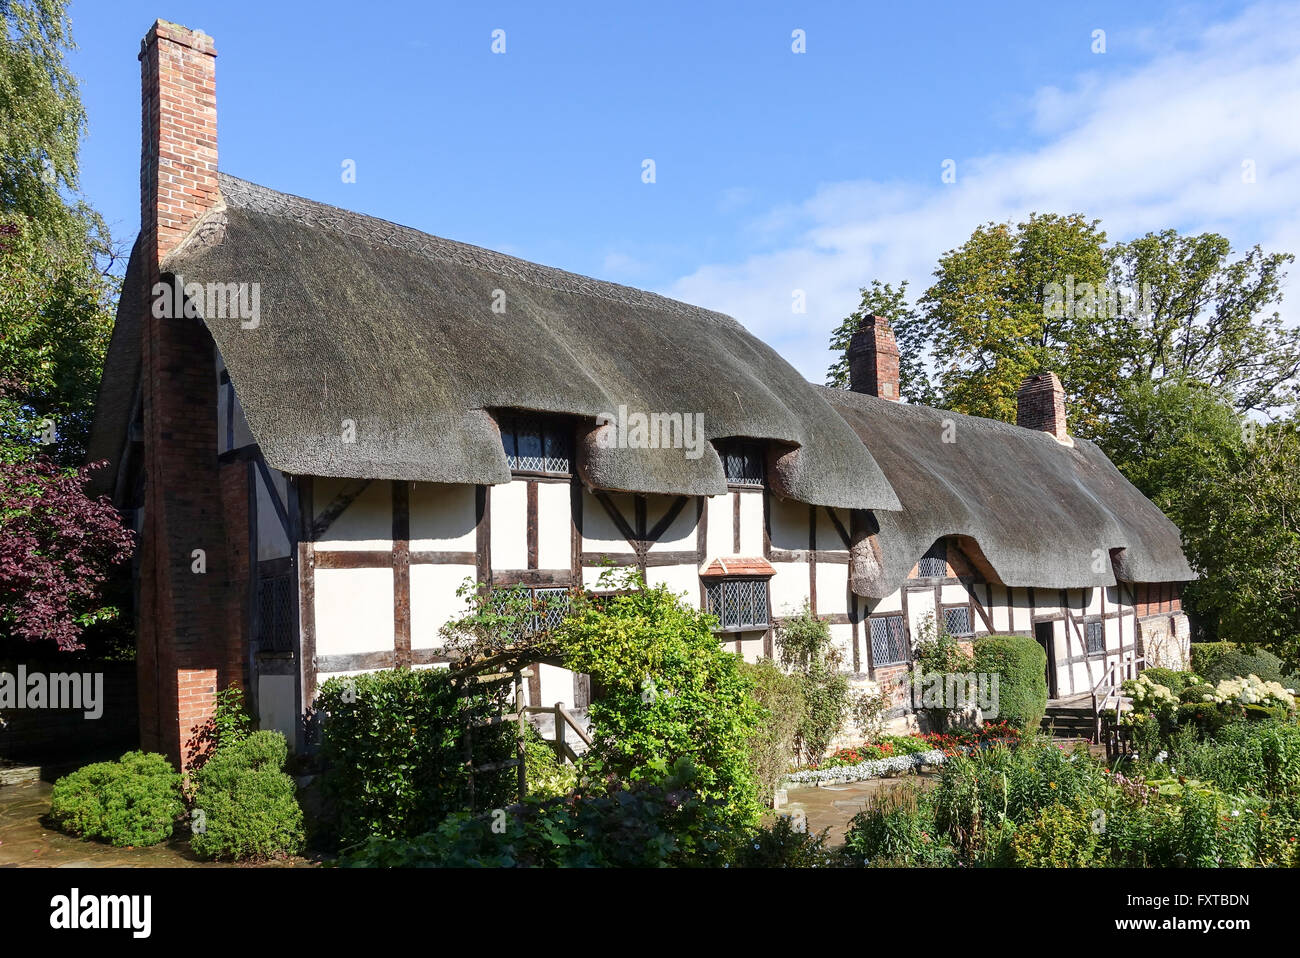 Anne Hathaway's Cottage, Shottery, Warwickshire, UK -2 - Stock Image